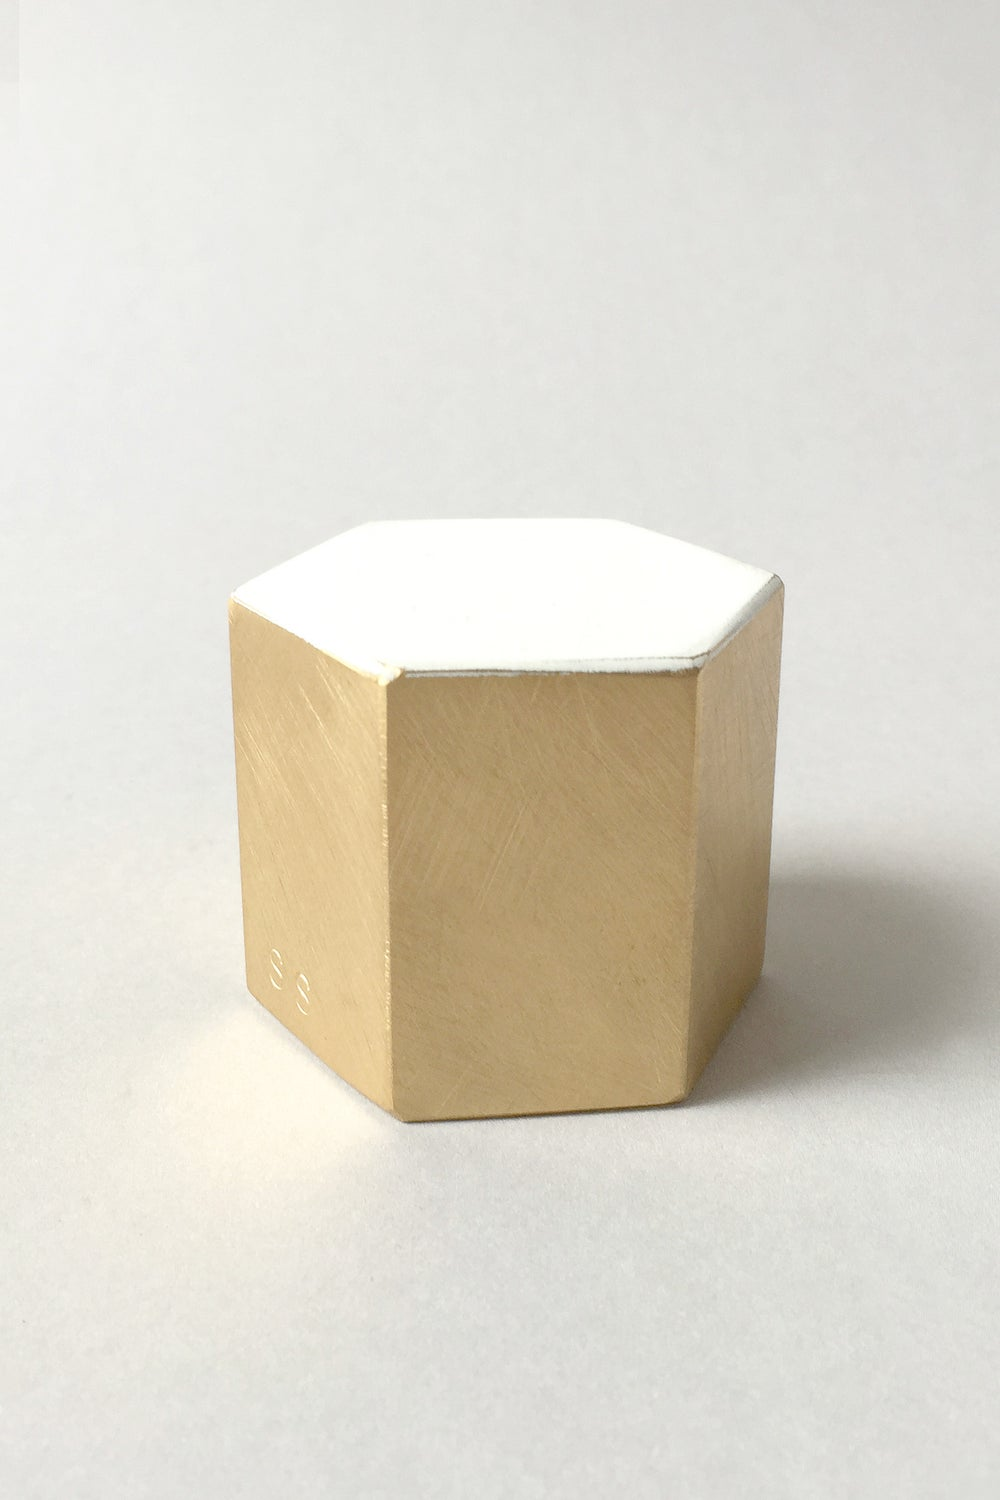 Image of Float paperweight - Hexagon